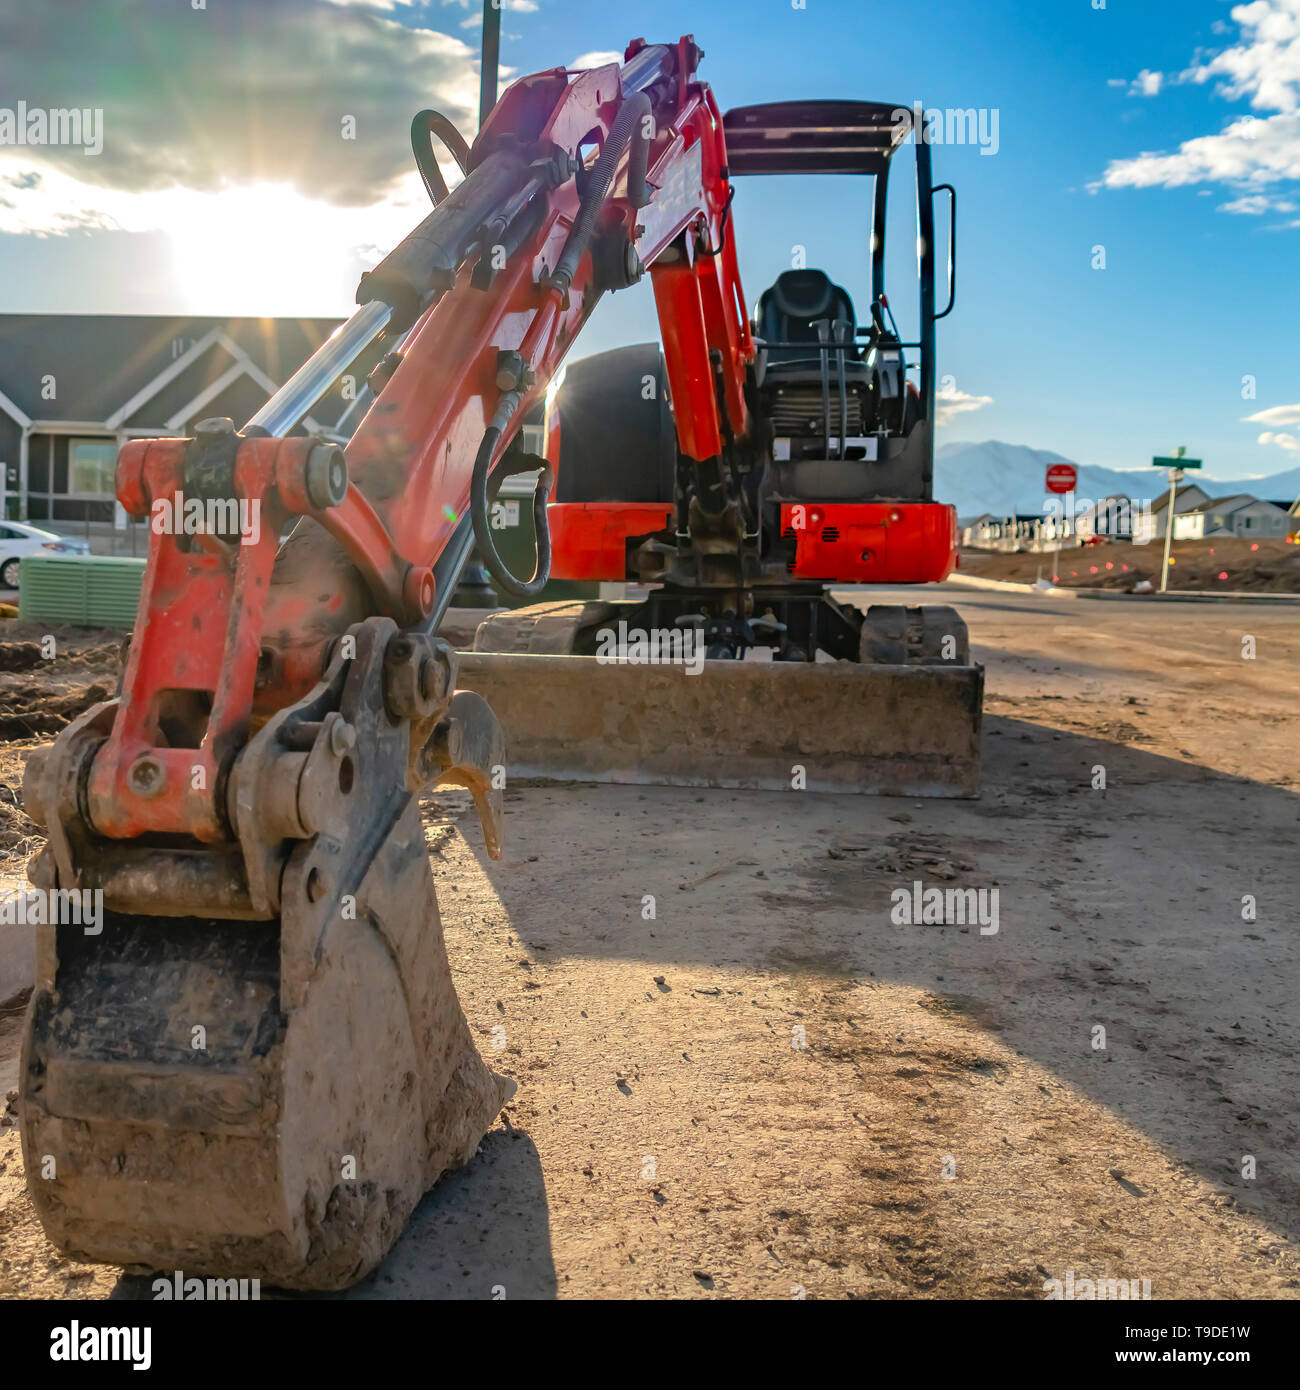 Square Close up of a red excavator with an attched grader blade viewed on a sunny day - Stock Image